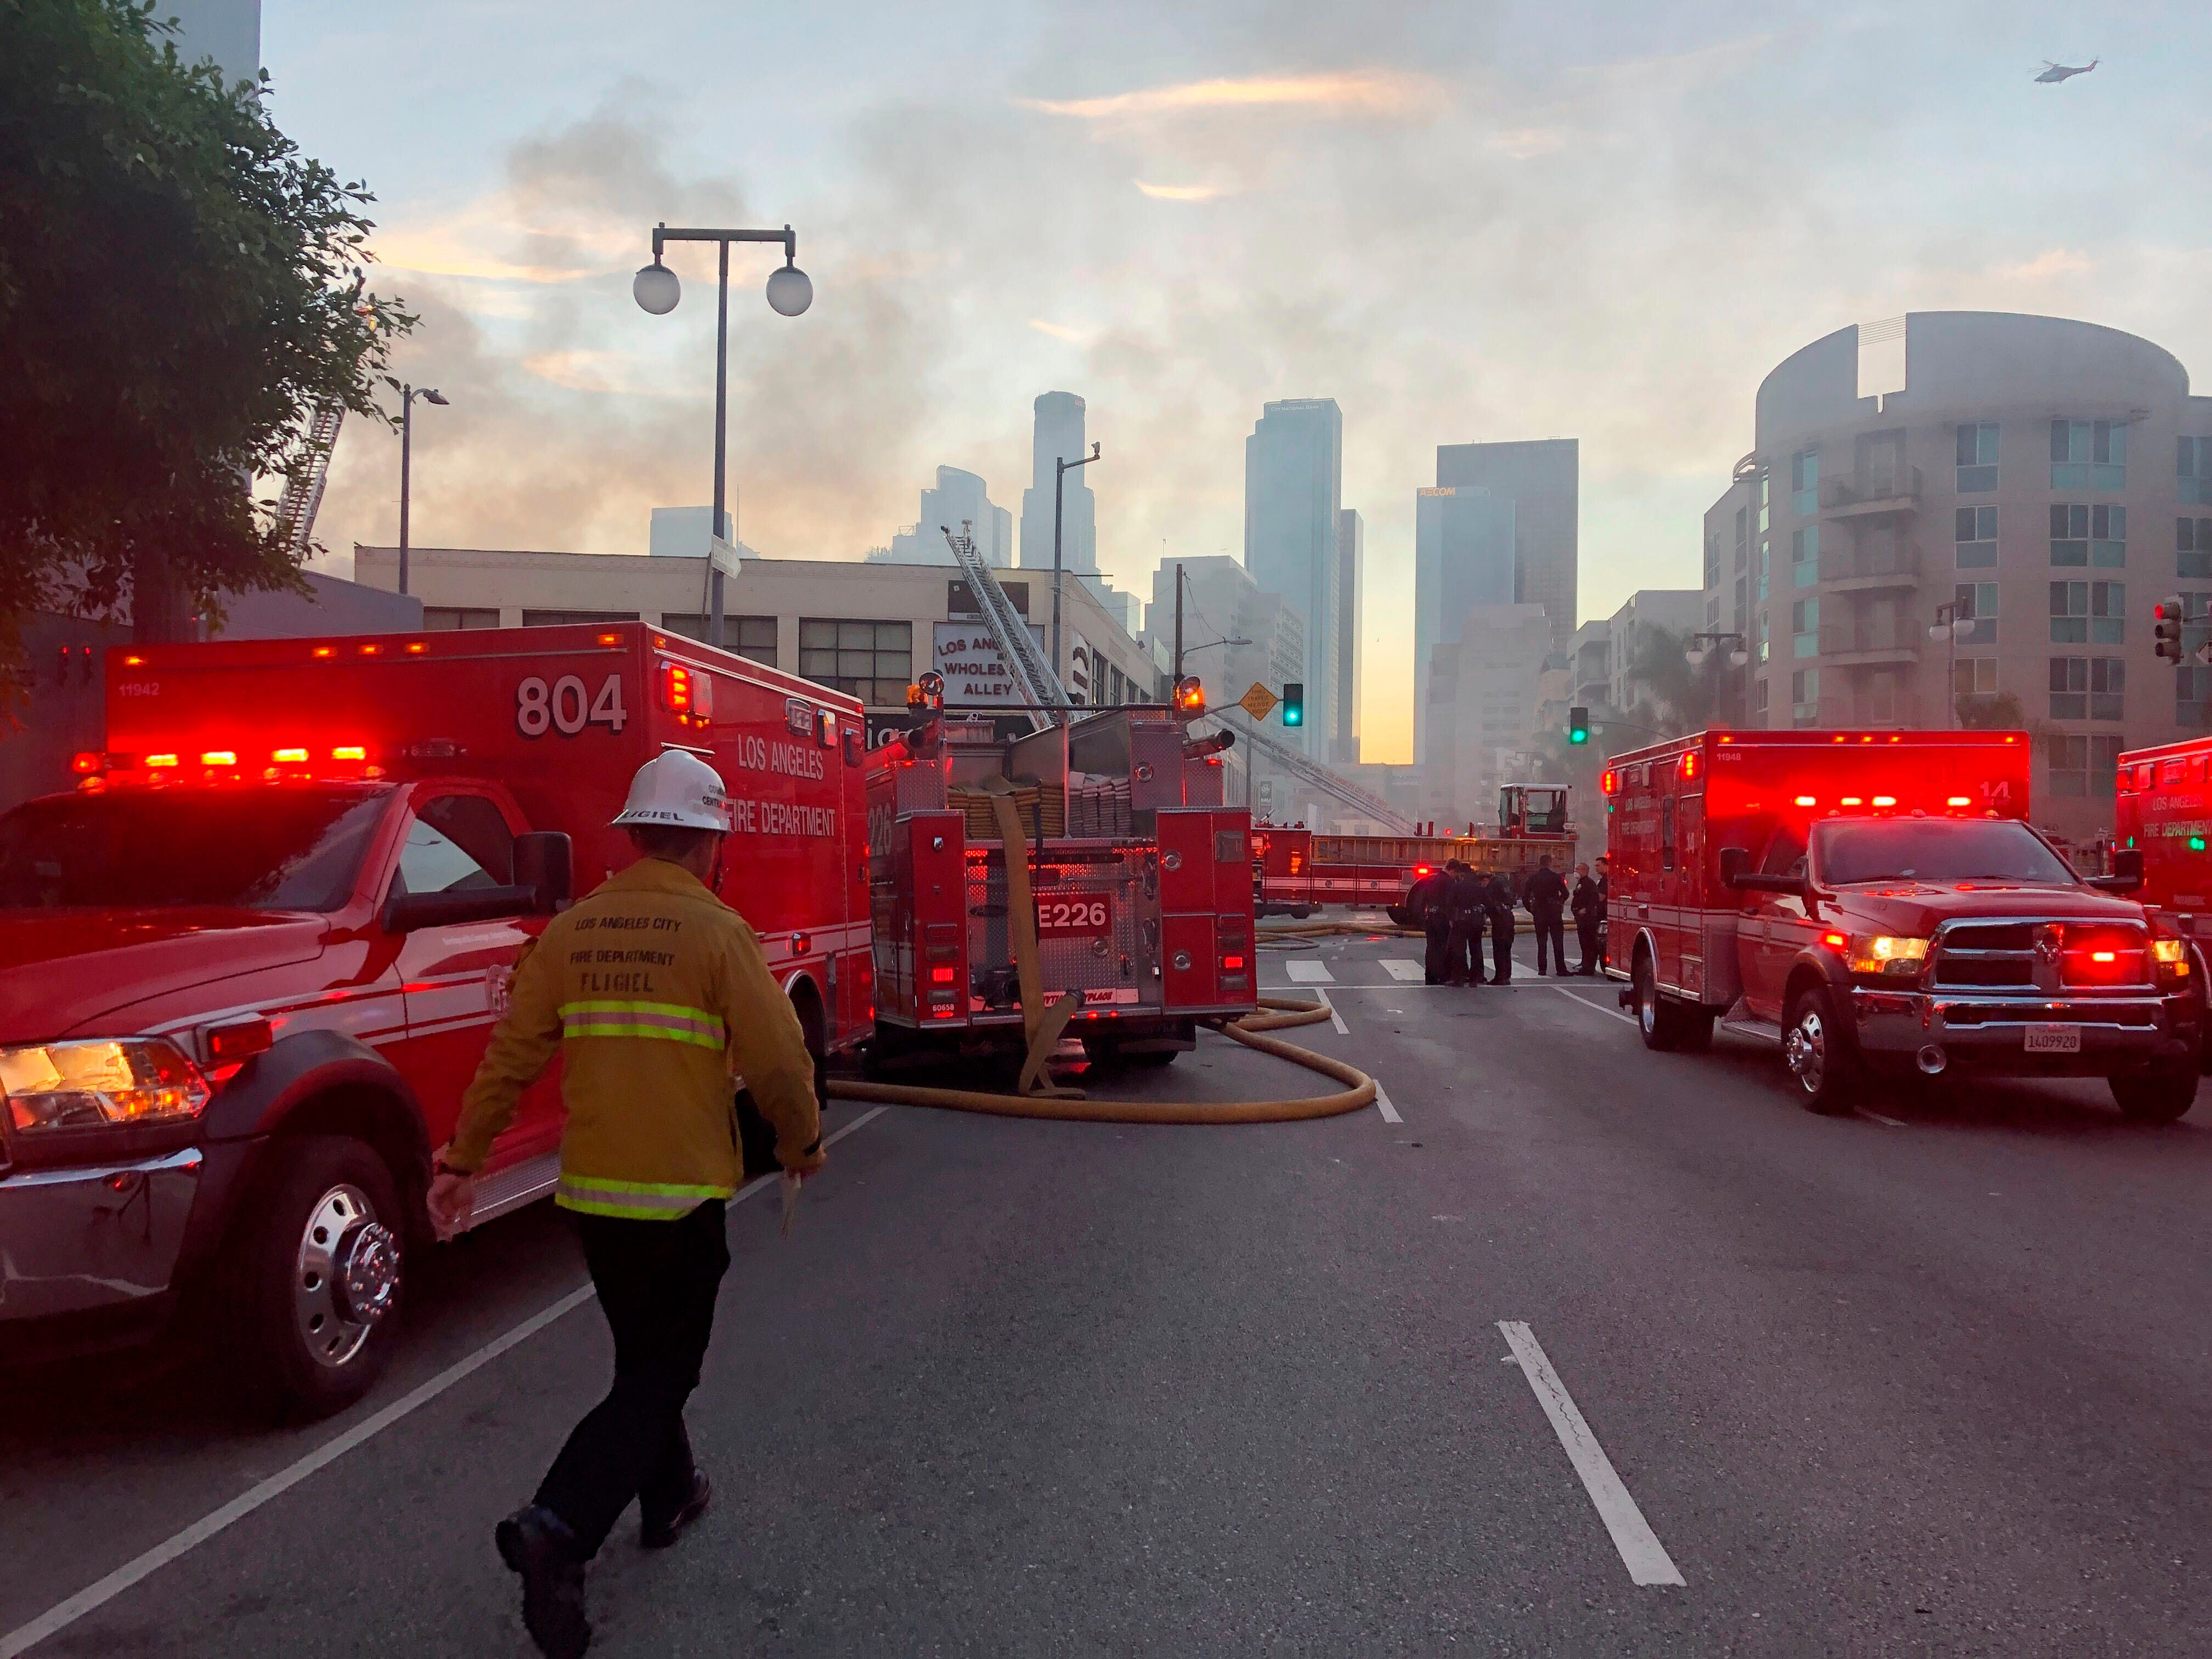 Fire, explosion in downtown Los Angeles injures at least 10 firefighters